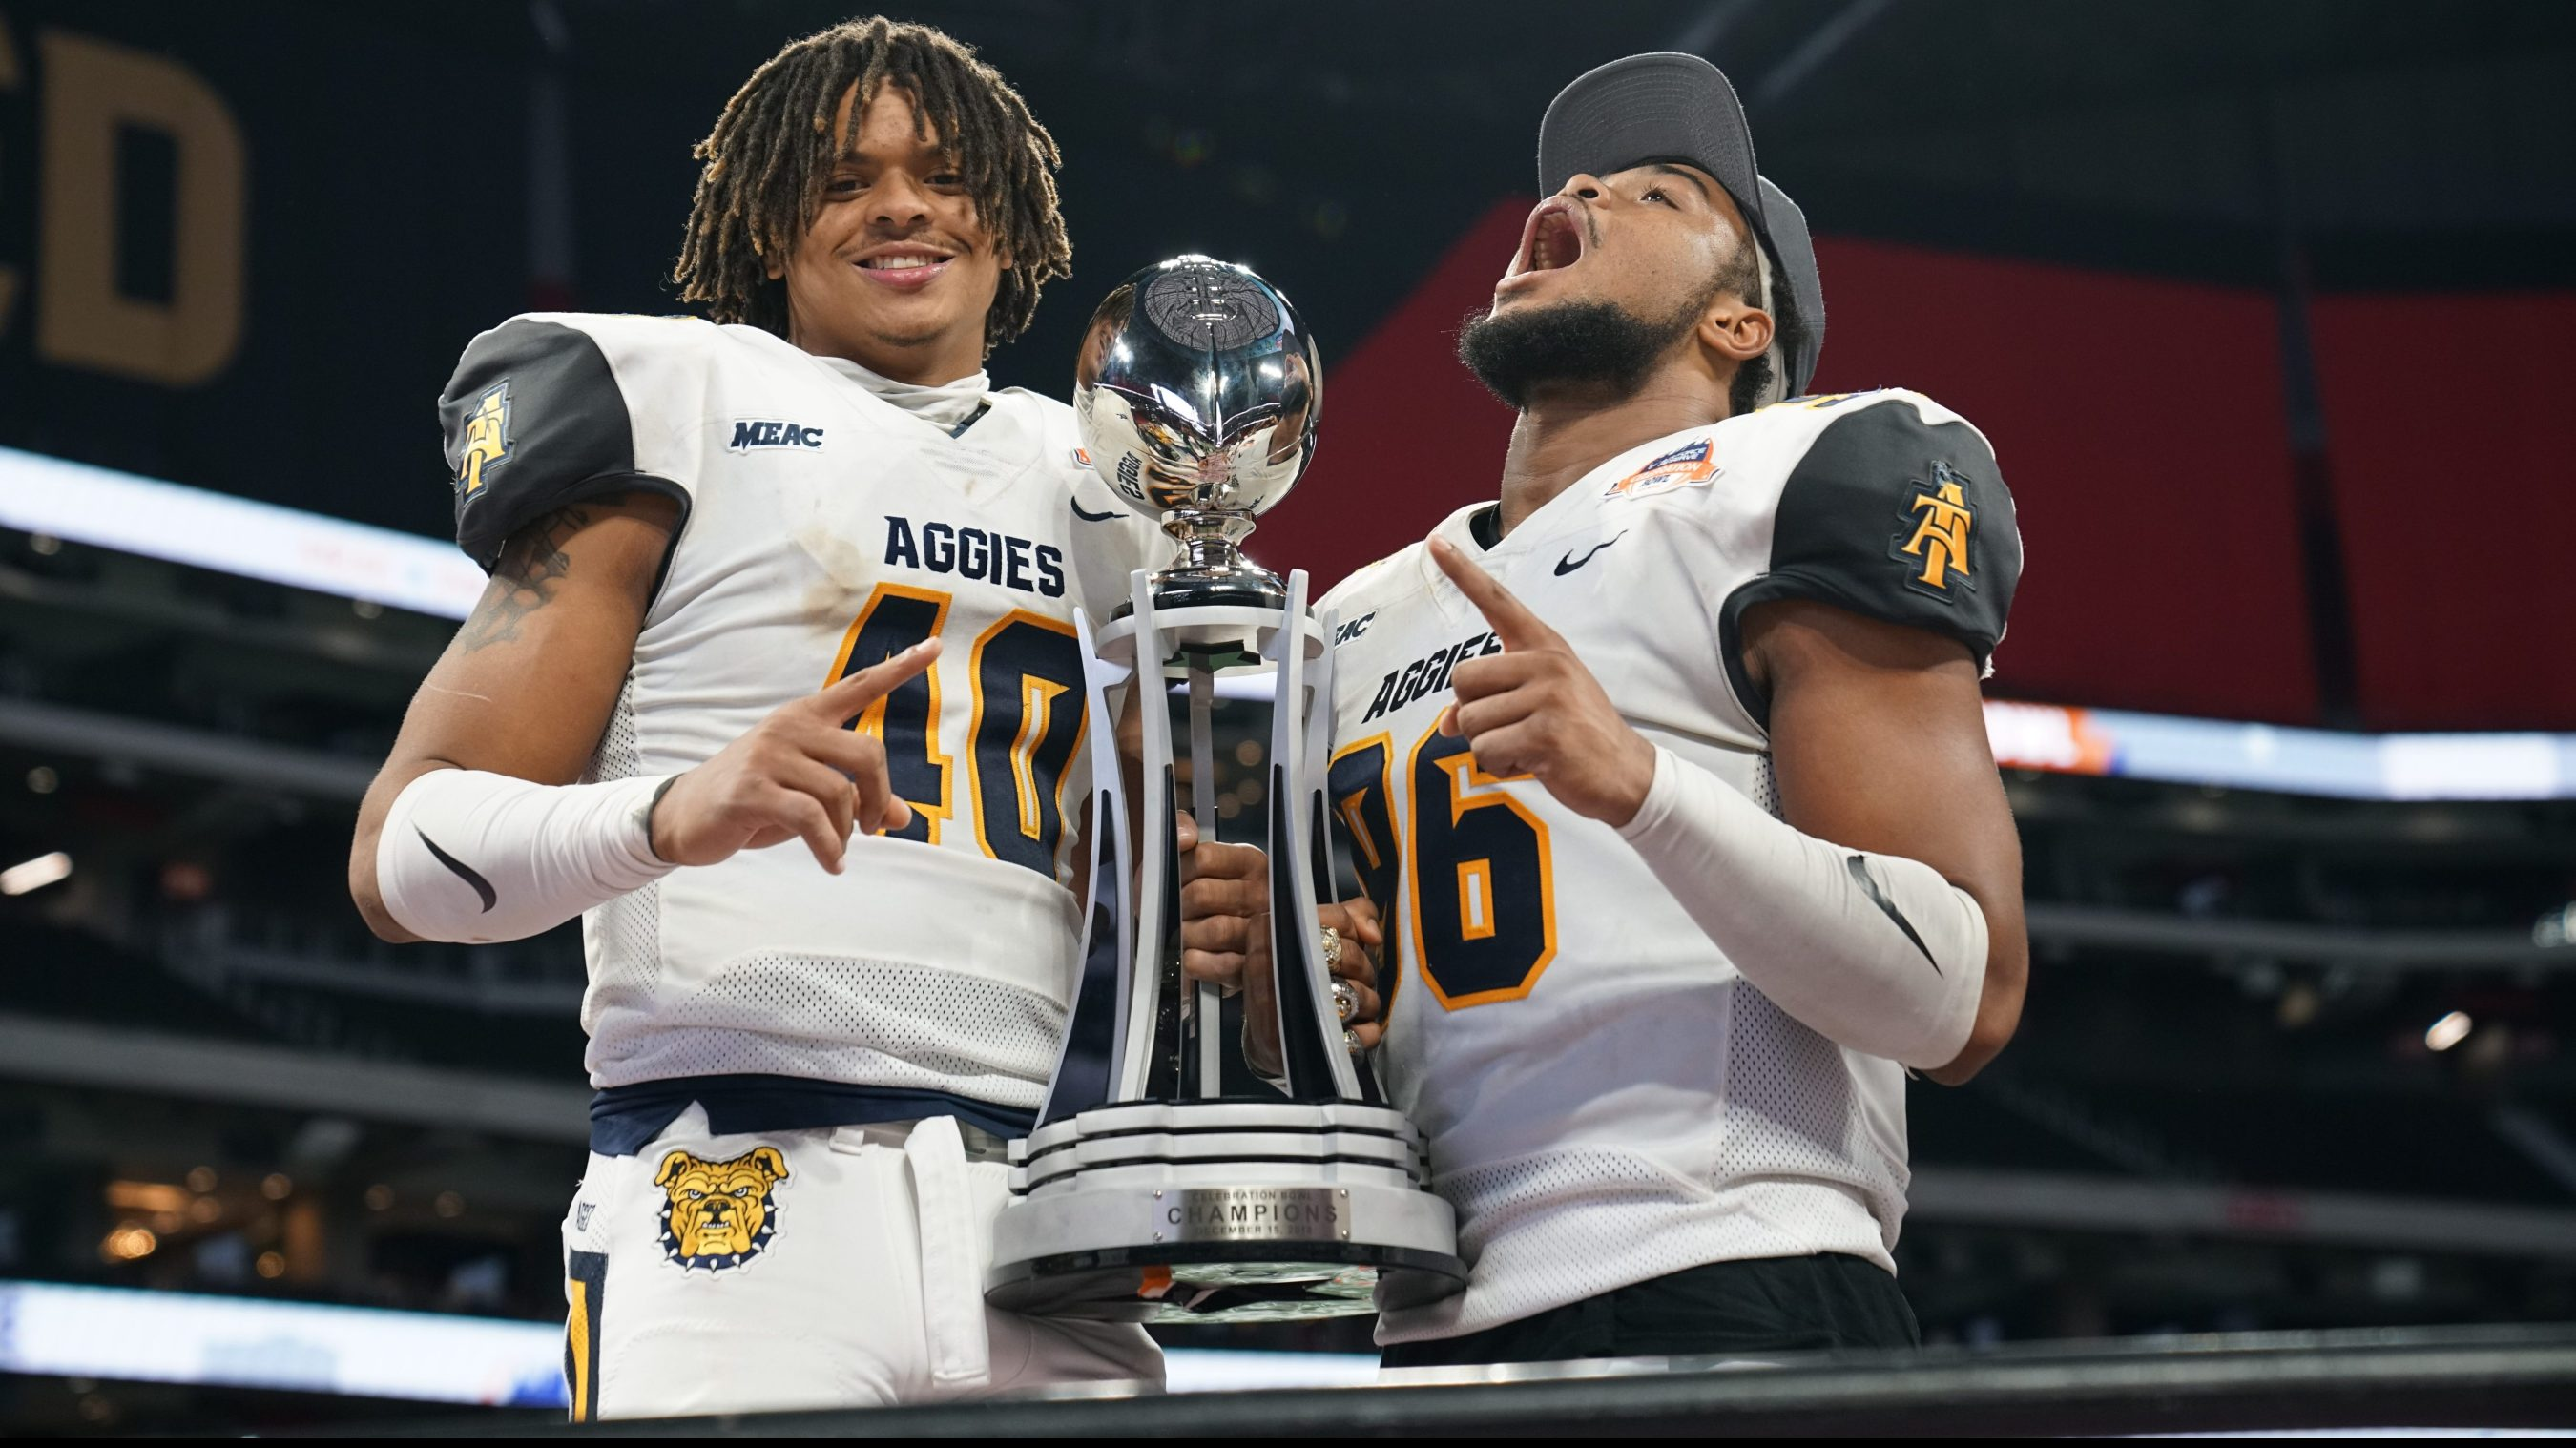 d78abaa84ff Even with a year of eligibility left, N.C. A&T's Darryl Johnson believes  he's NFL-ready